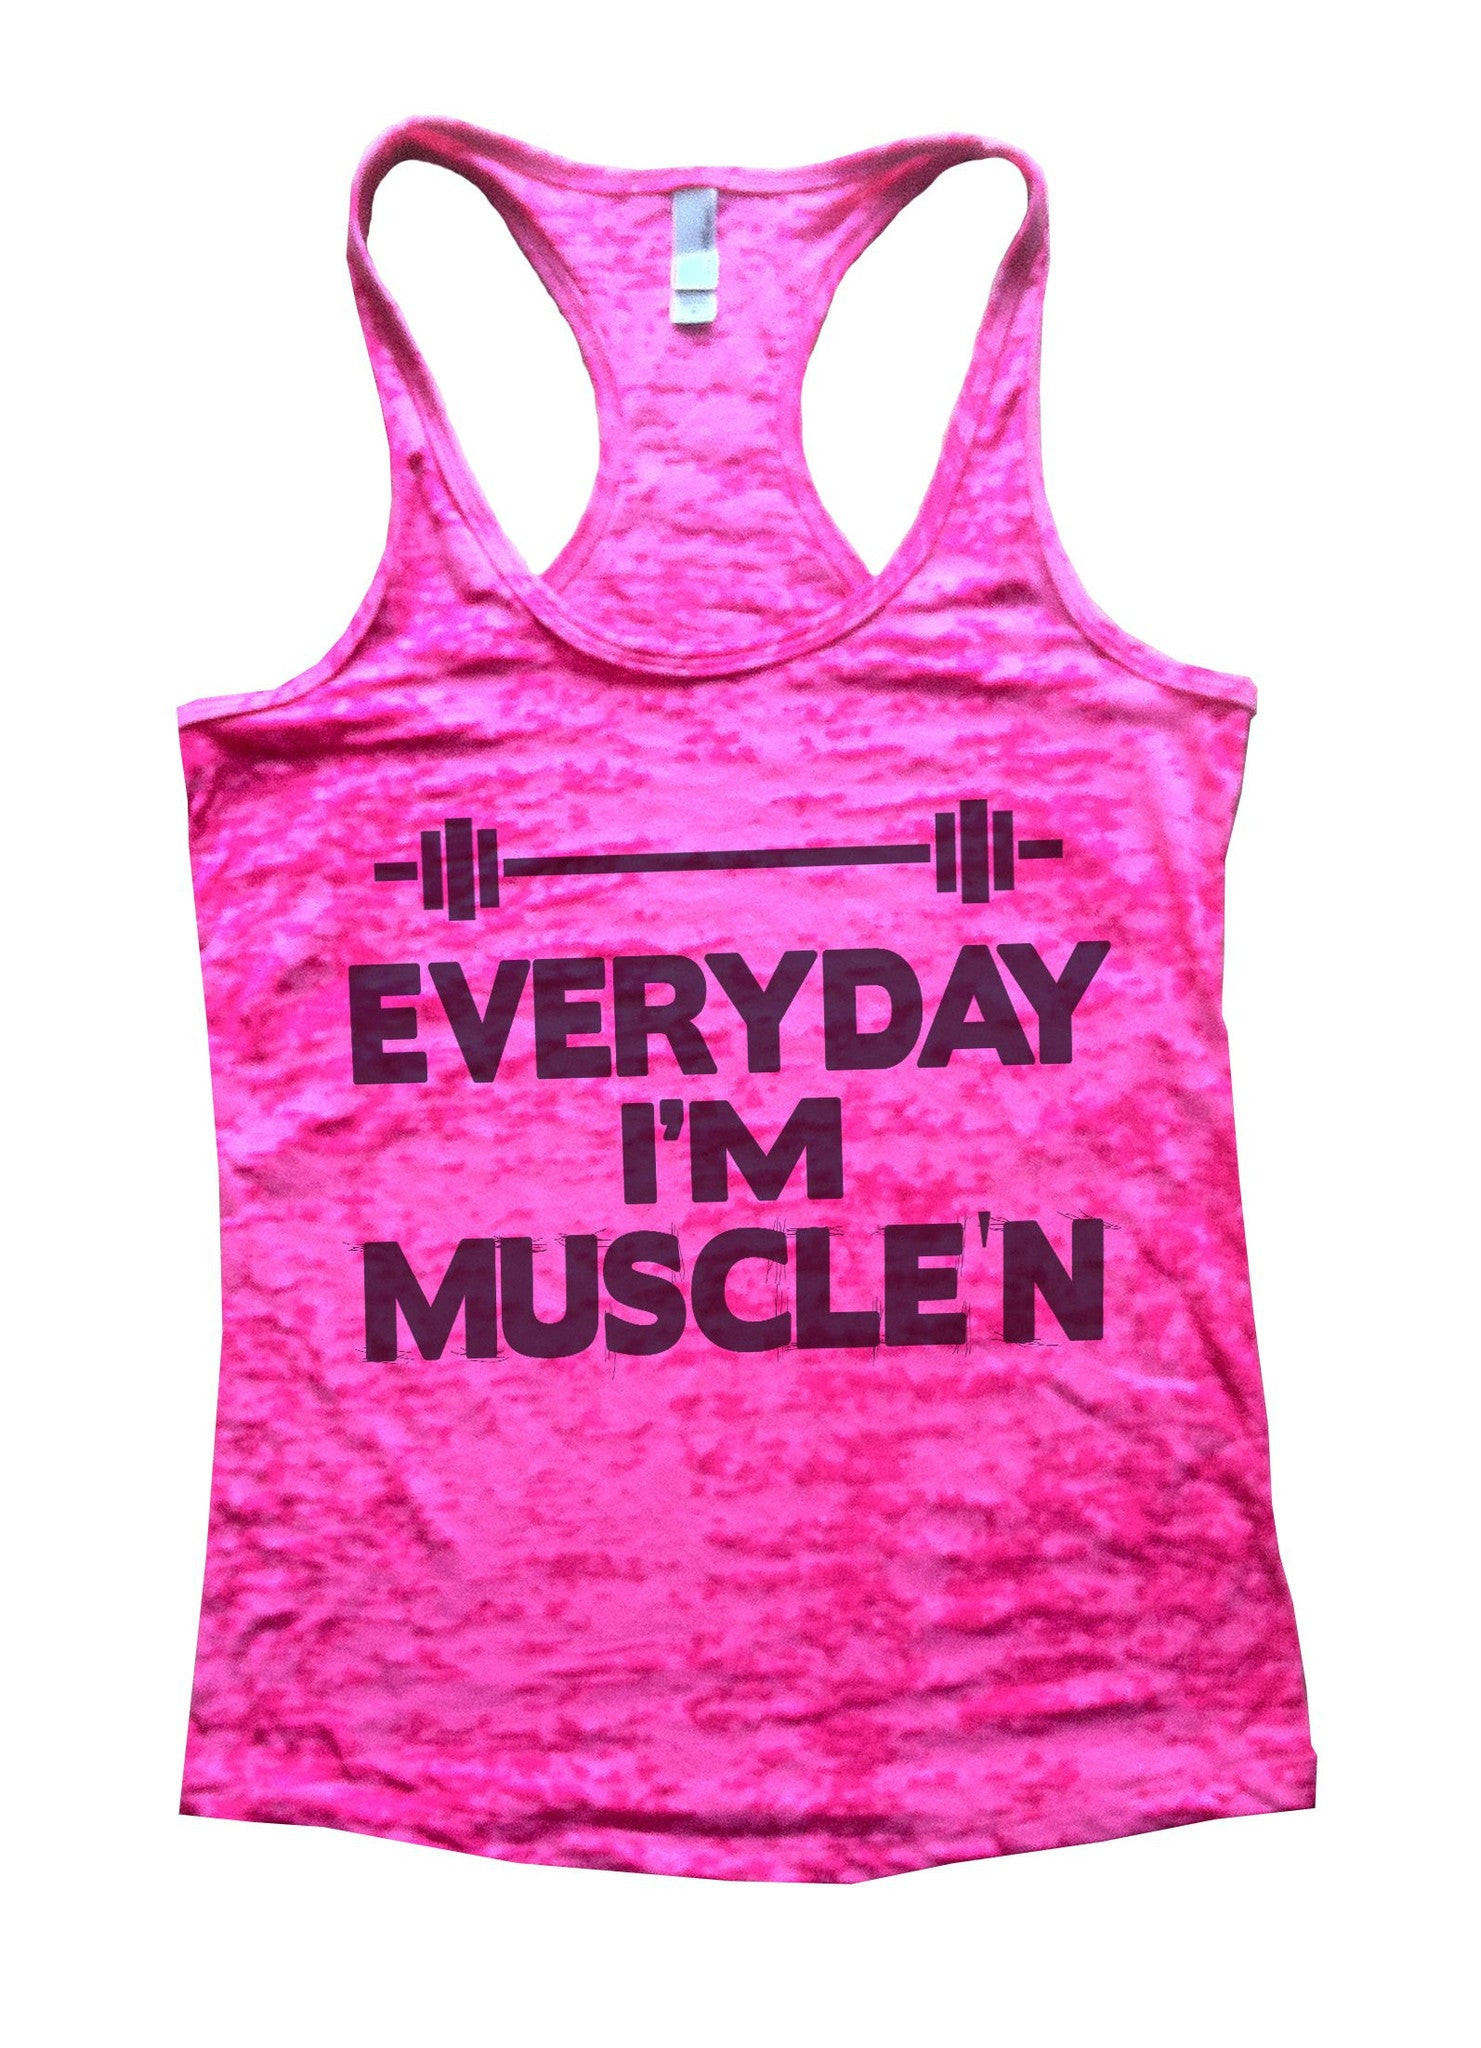 Everyday I'm Muscle'n Burnout Tank Top By BurnoutTankTops.com - 636 - Funny Shirts Tank Tops Burnouts and Triblends  - 1